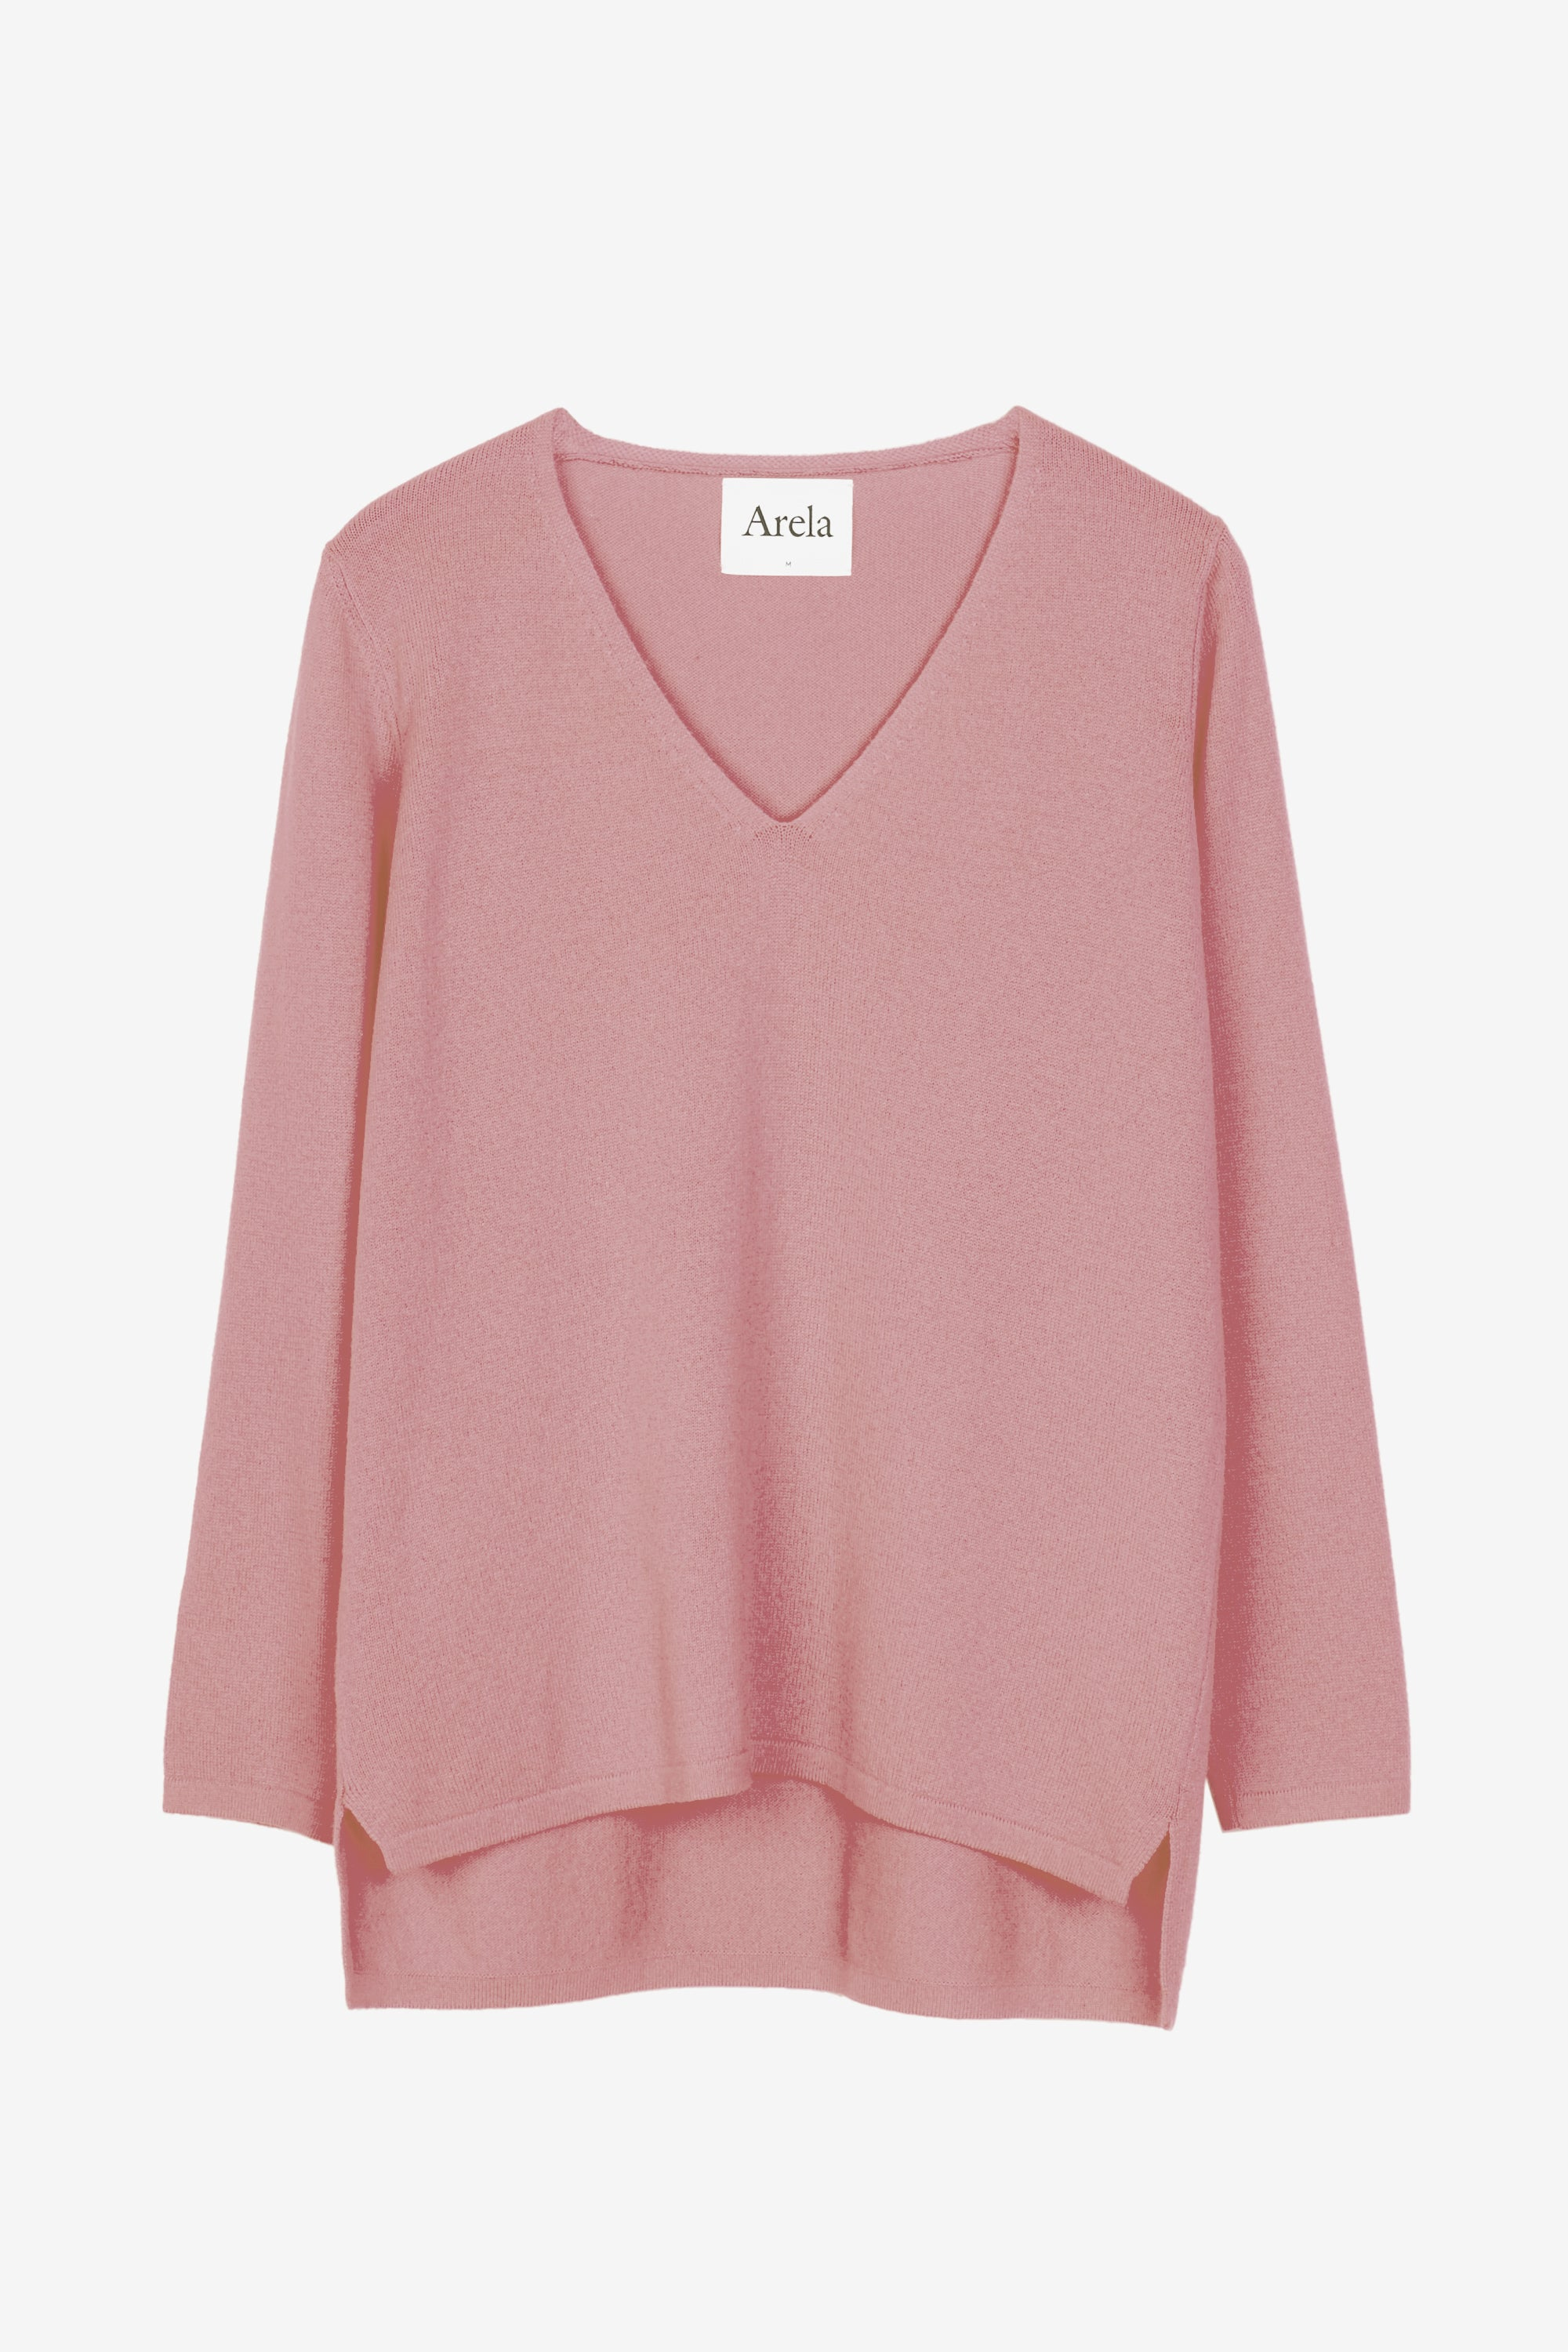 Vija sweater in rose